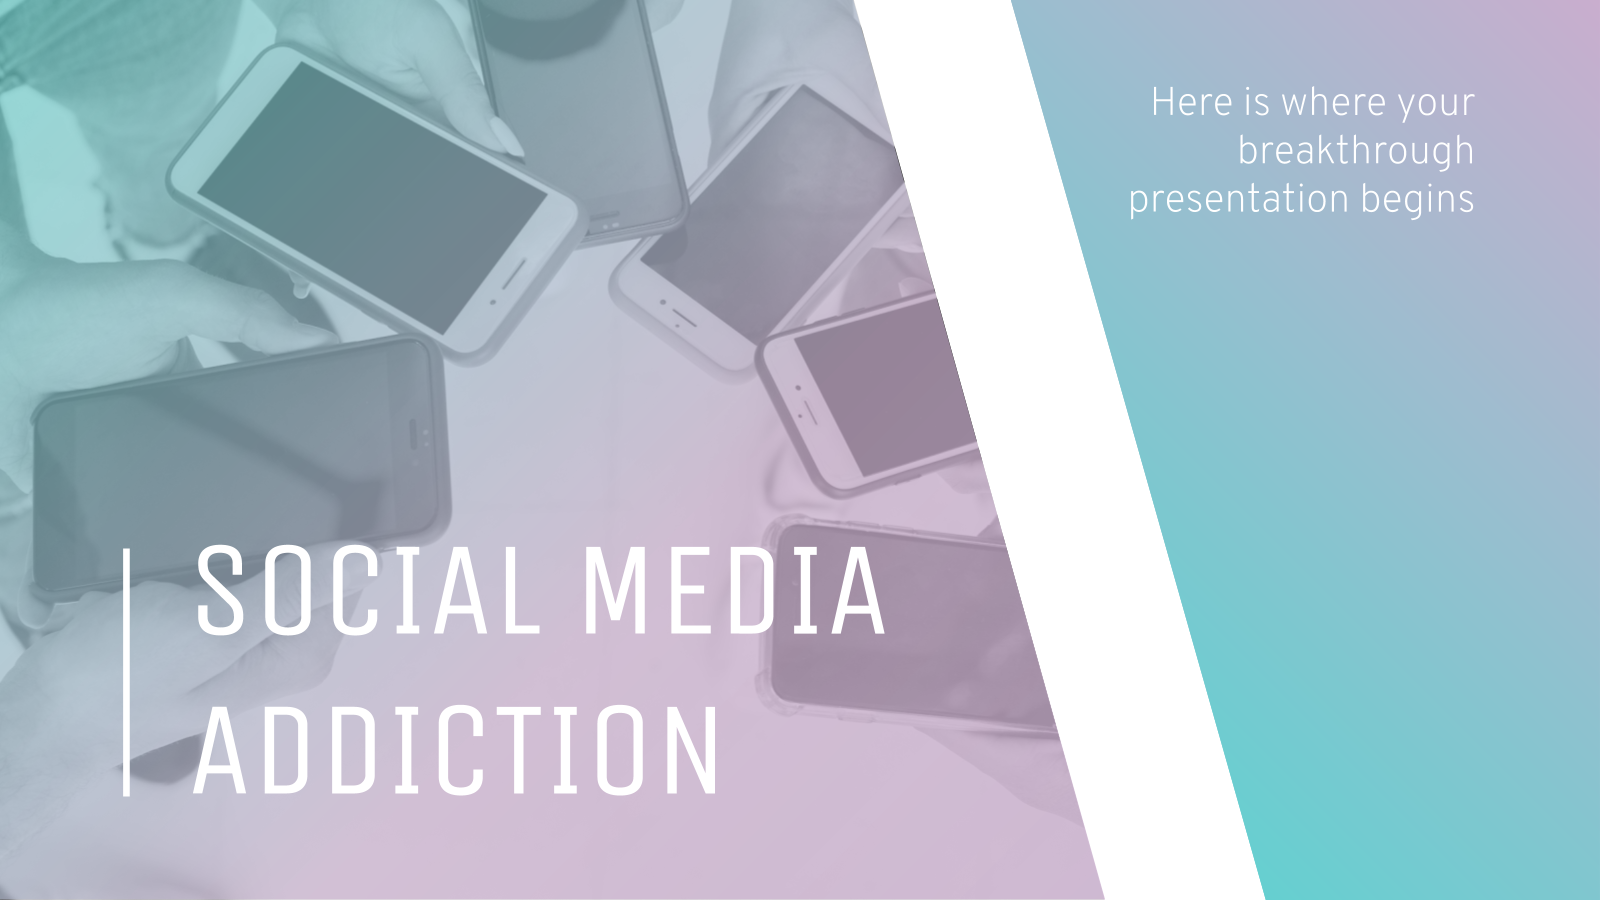 Social Media Addiction Breakthrough presentation template